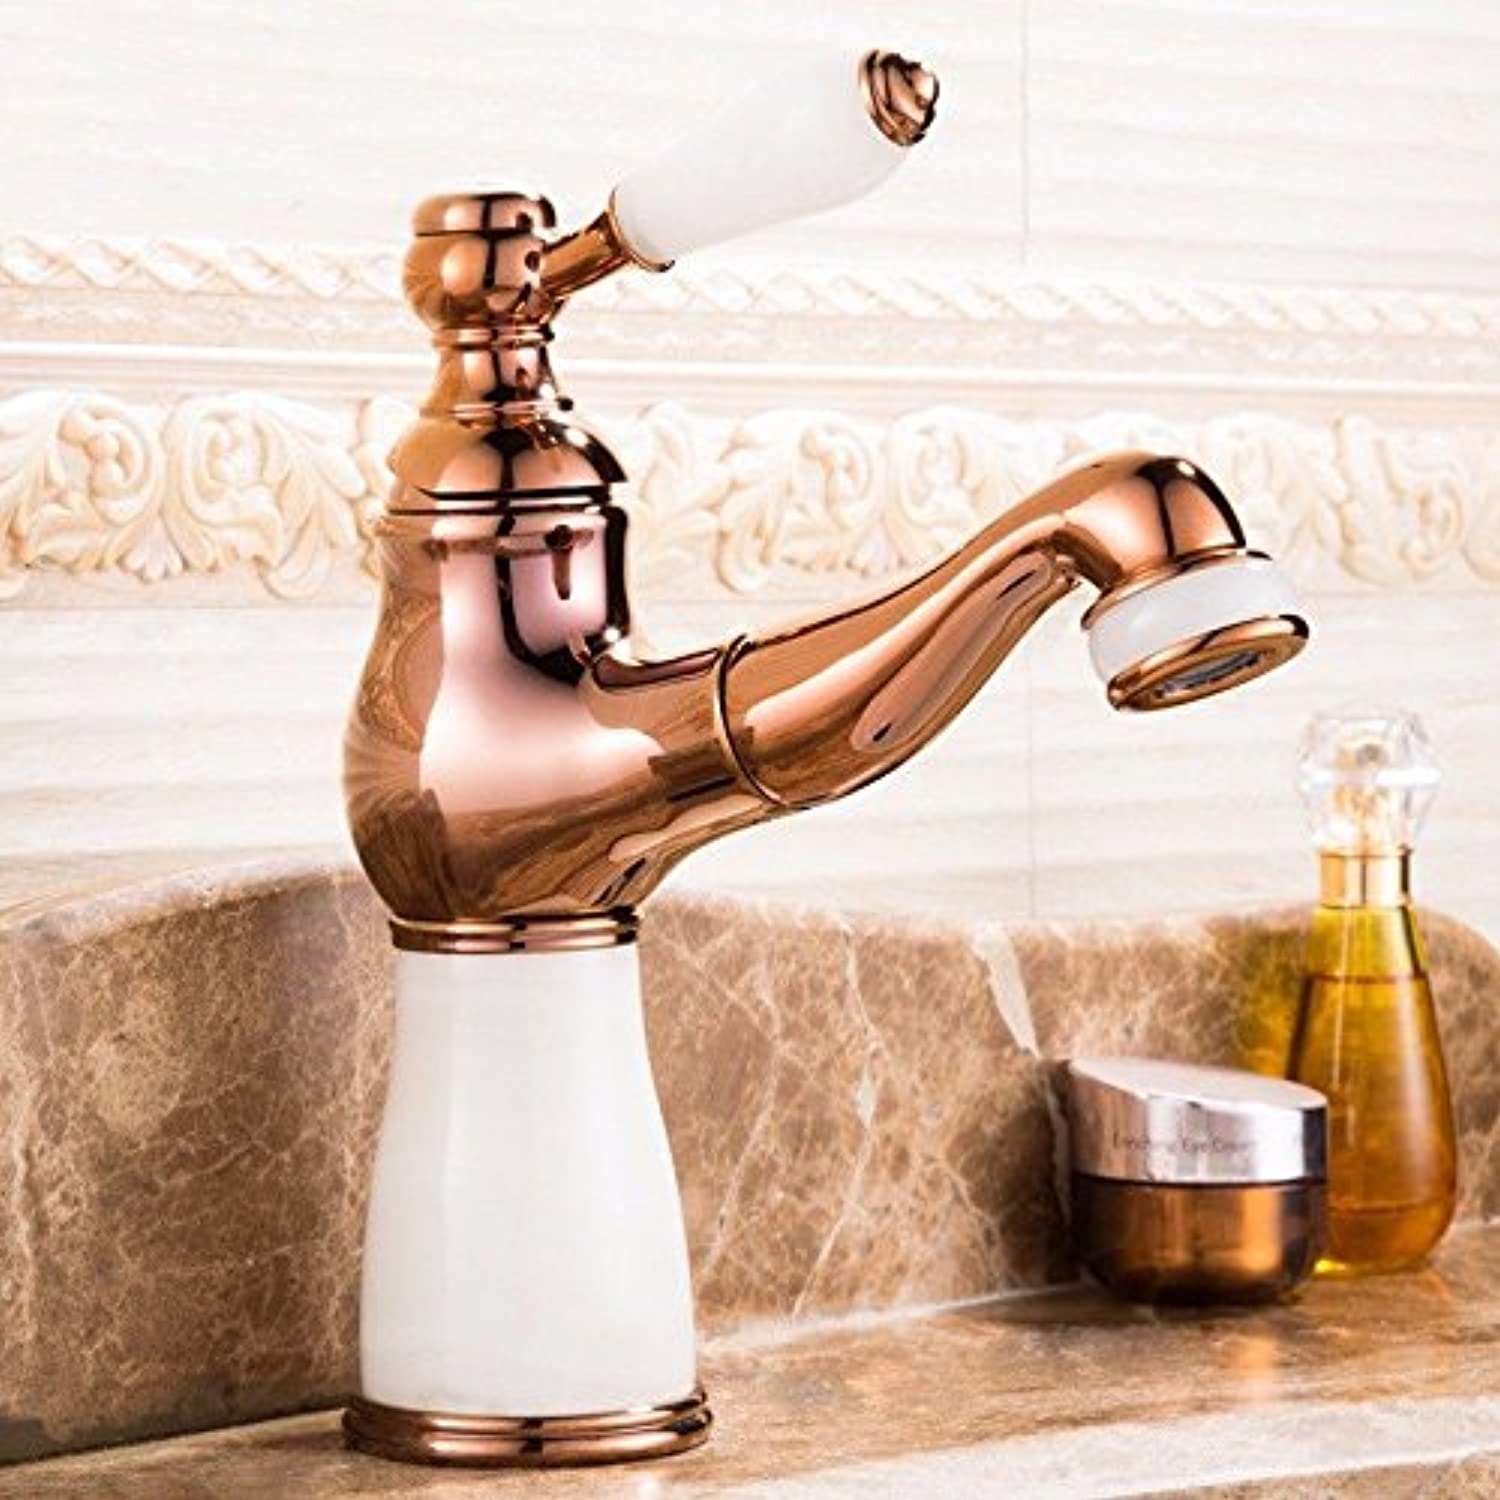 Lpophy Bathroom Sink Mixer Taps Faucet Bath Waterfall Cold and Hot Water Tap for Washroom Bathroom and Kitchen Jade Pull Type Hot and Cold C